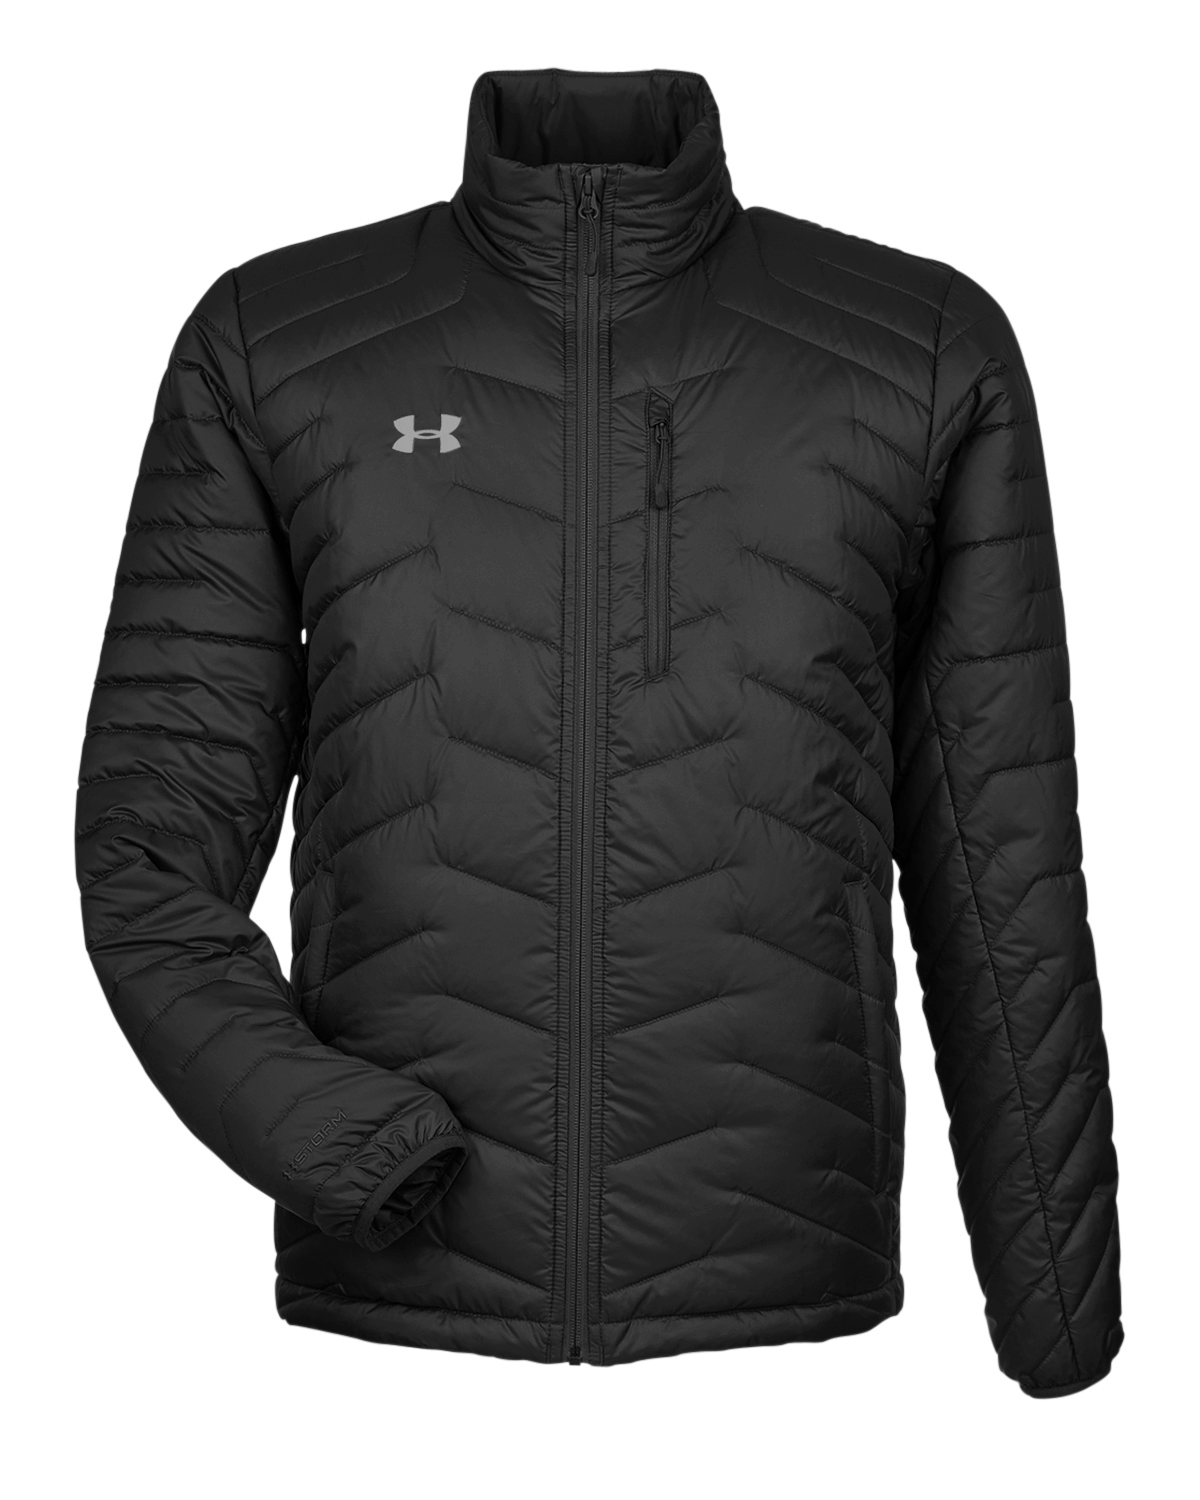 Under Armour 1317223 - Men's Corporate Reactor Jacket